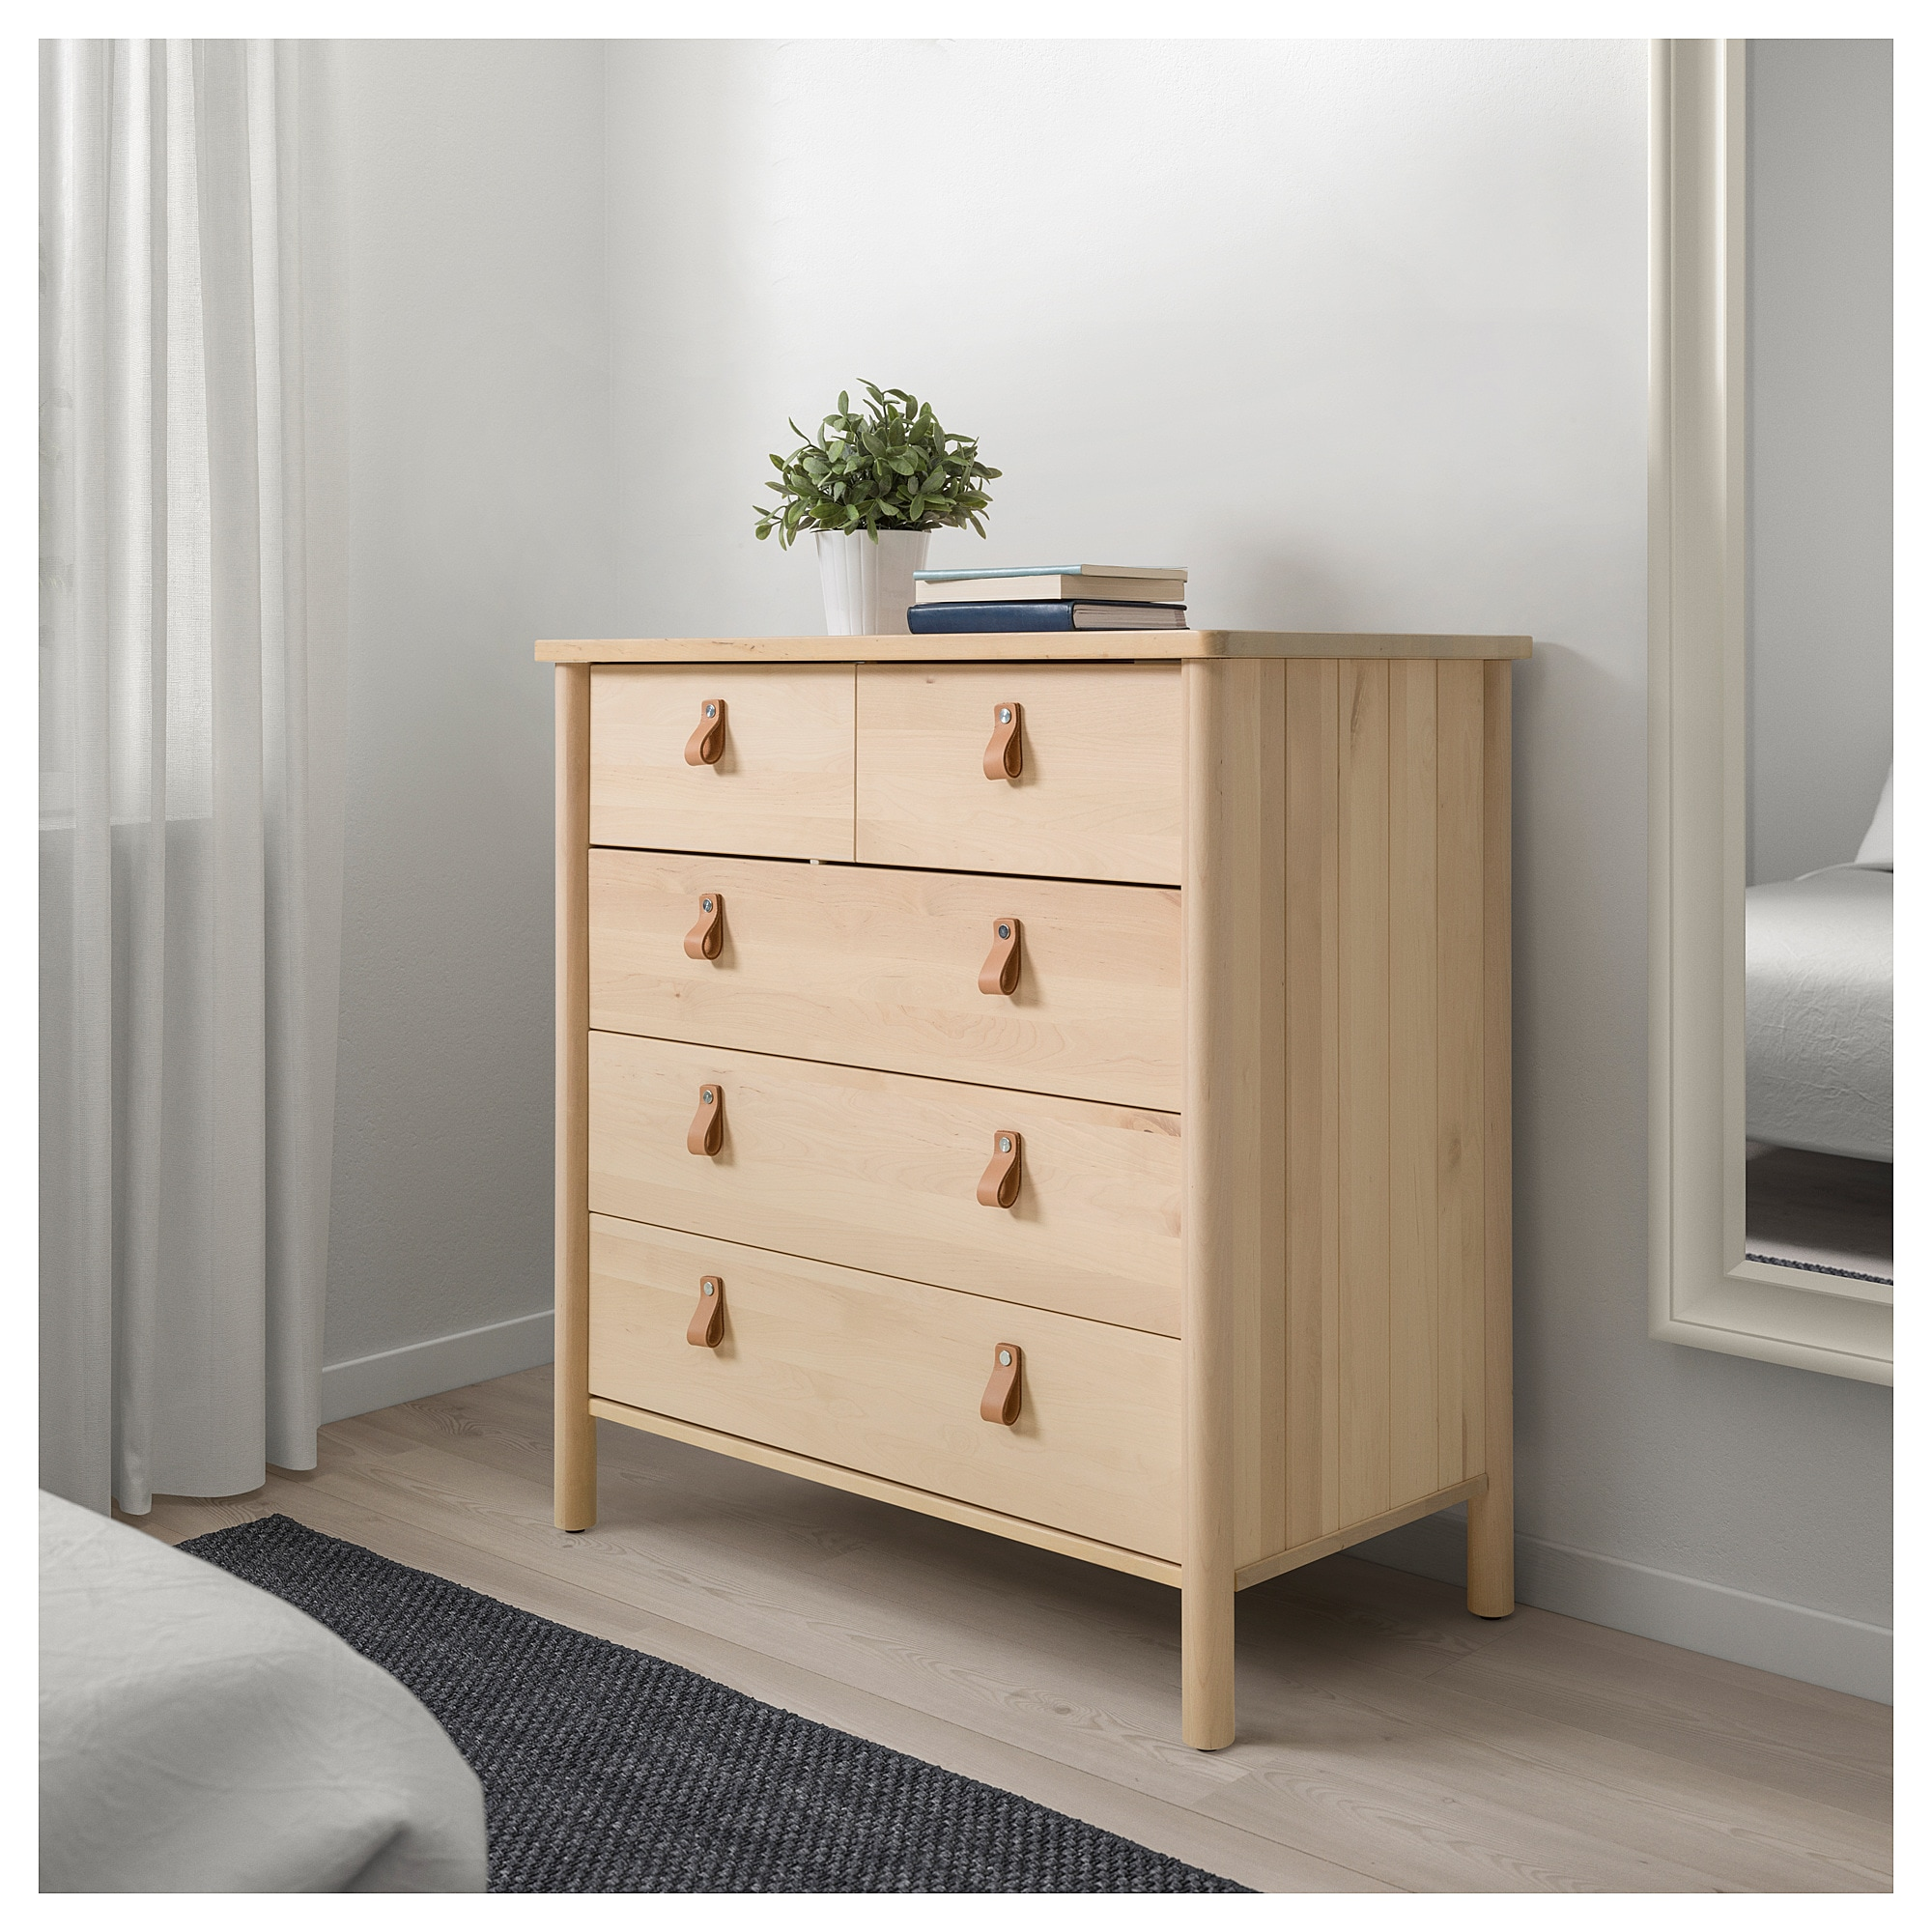 mirror chests shipping and classic inspire today black lonny q drawers garden product free overstock by wood of drawer dresser campaign home